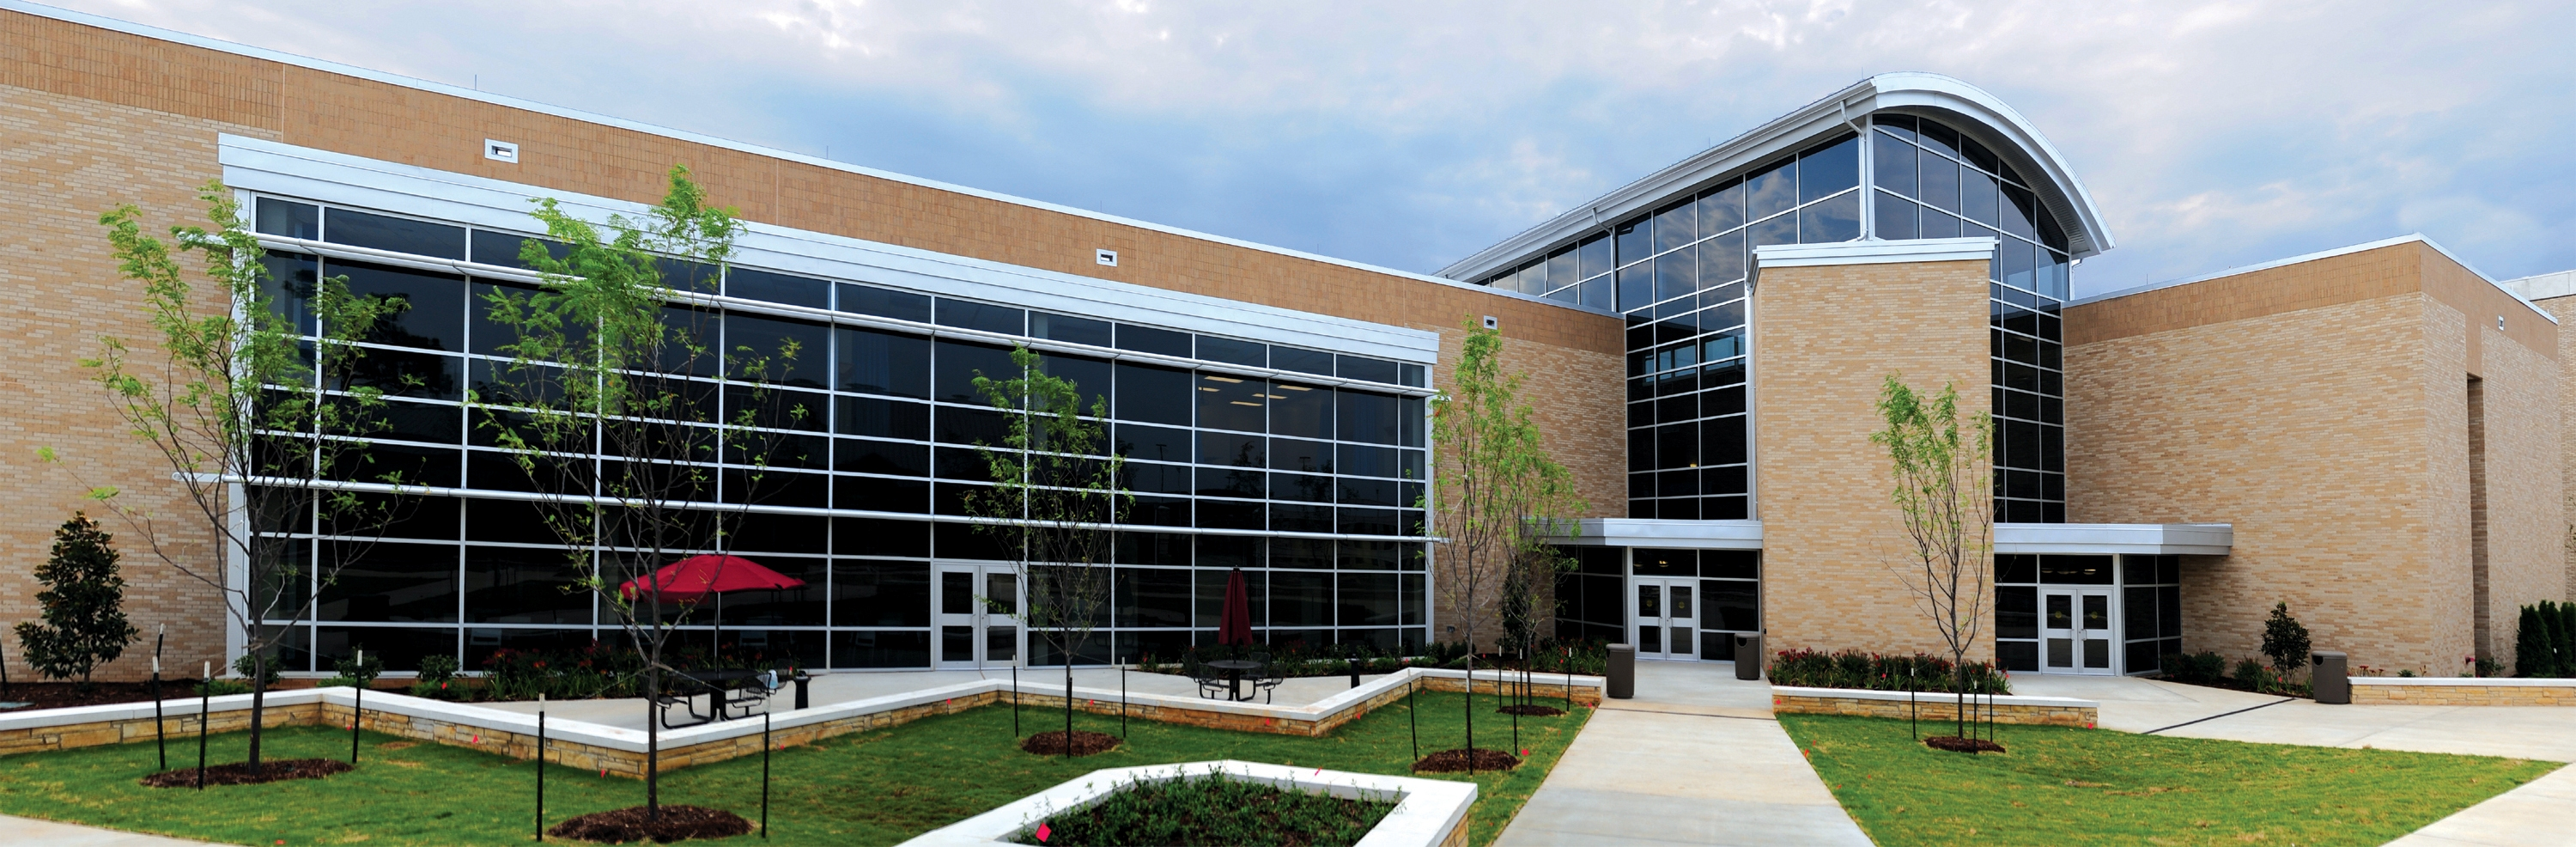 Donald w reynolds center for health sciences to be dedicated sept 25